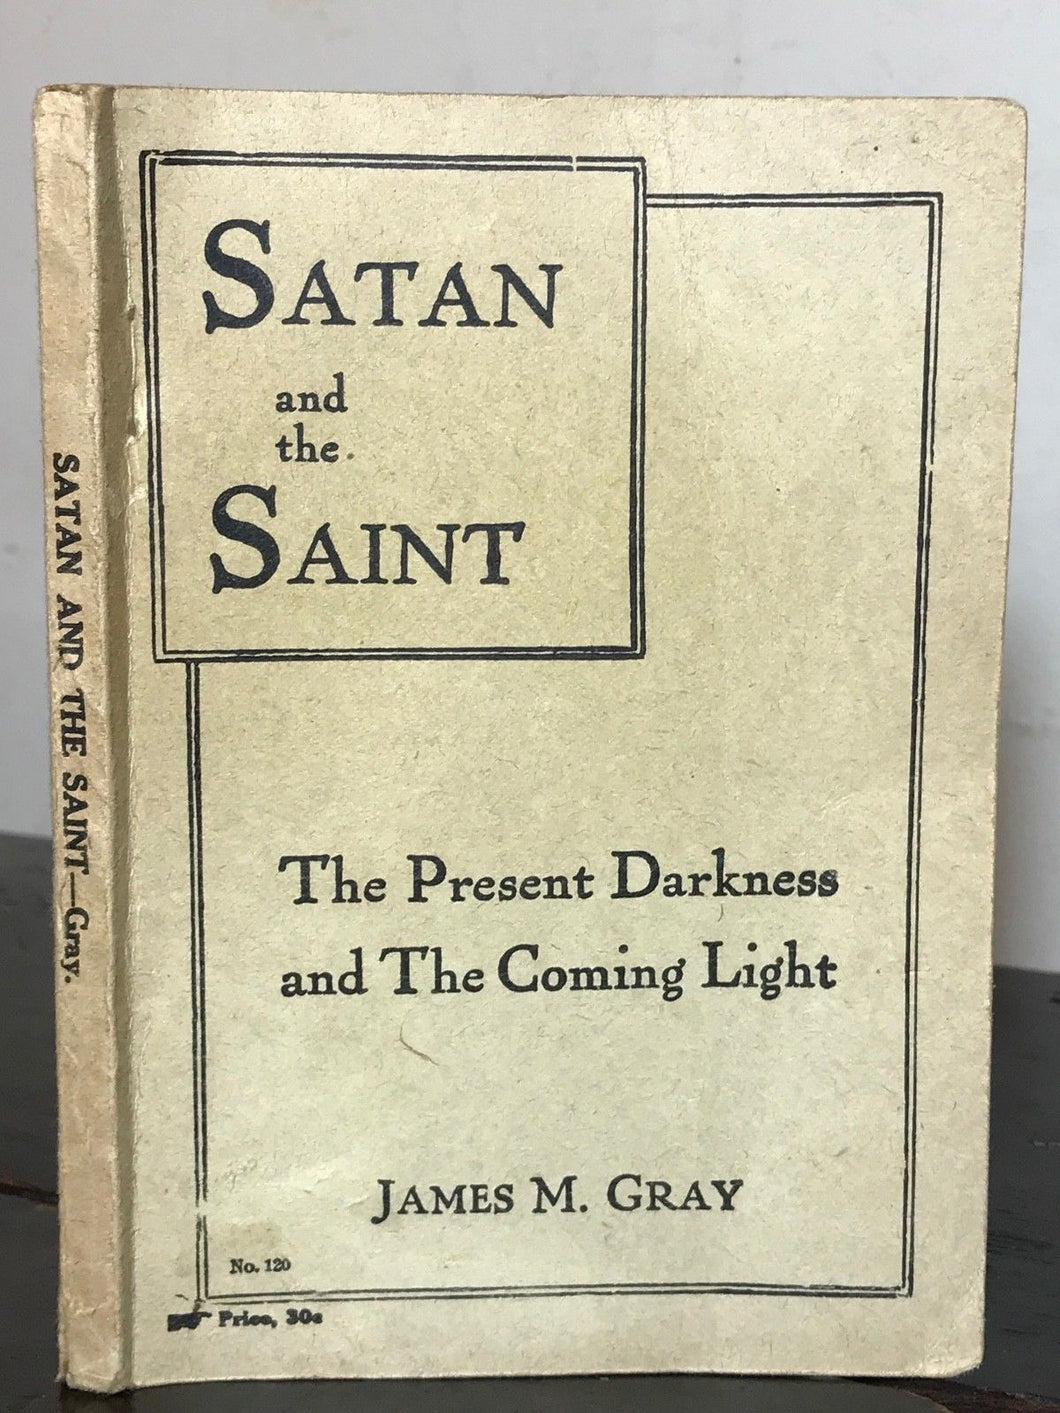 1909 SATAN AND THE SAINT - Gray 1st - ARMAGEDDON, BIBLICAL END-TIMES, DEMONOLOGY